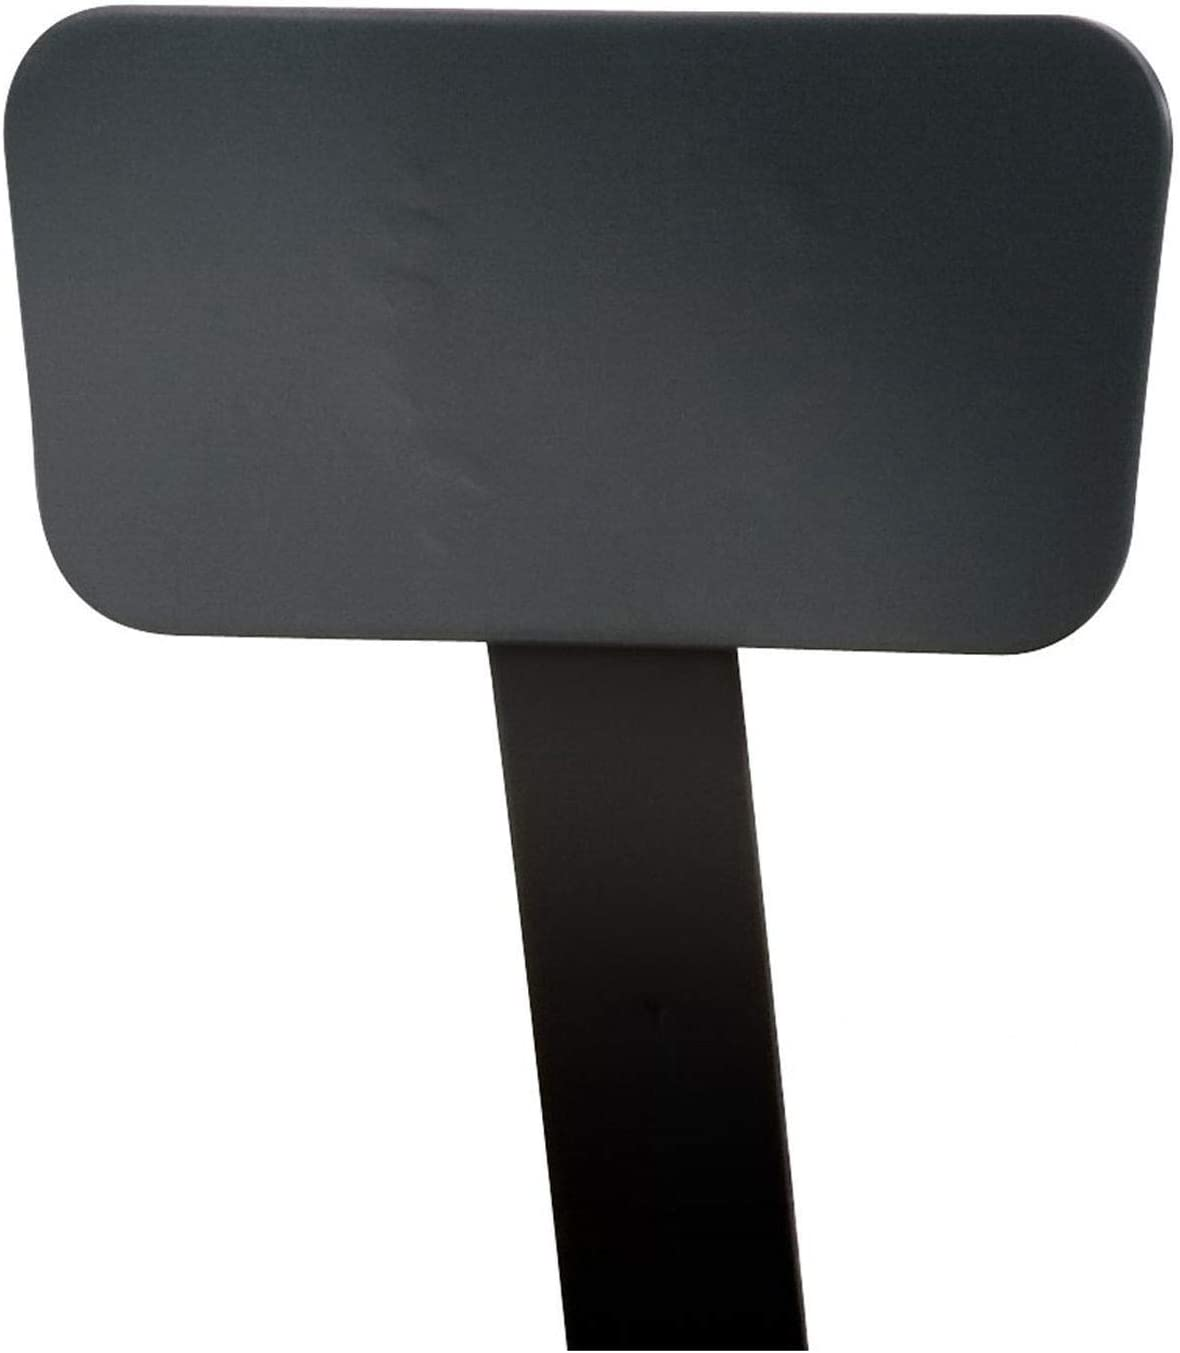 NPS High quality Raleigh Mall Steel Backrest for 6200 and Stools 6300 Black - Series